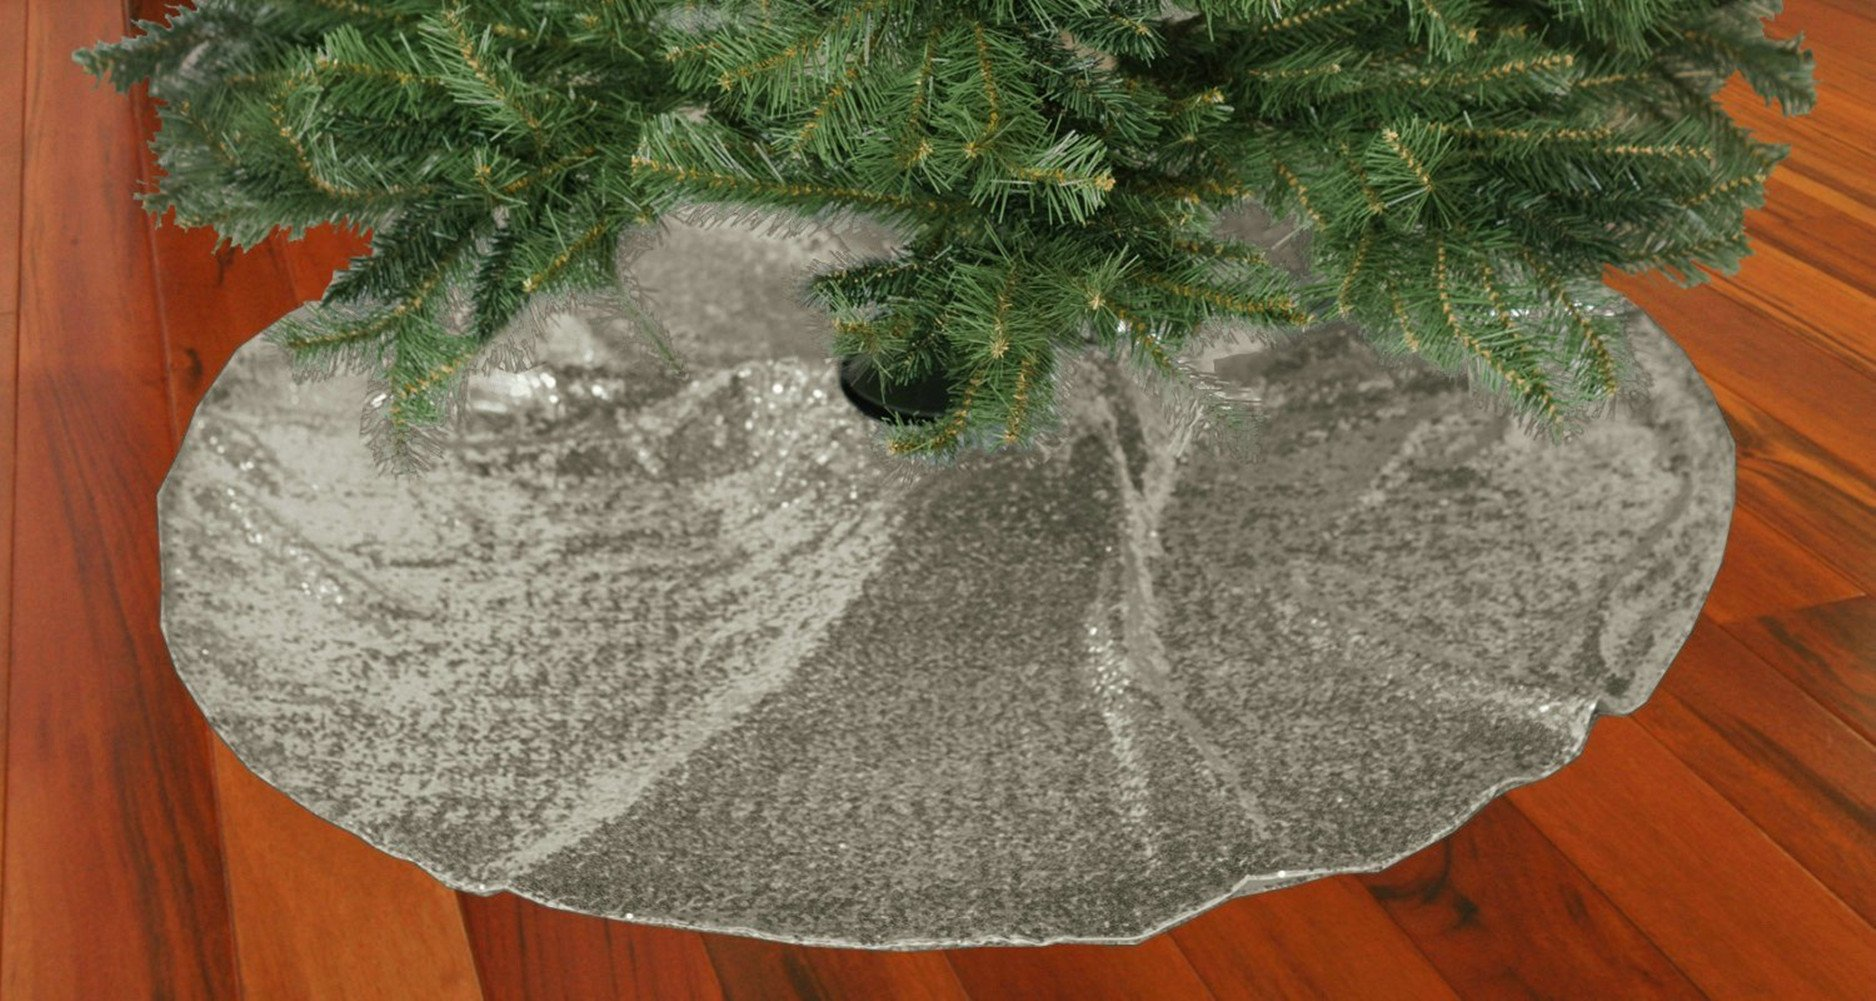 TRLYC 50-Inch Round Embroidery Sequin Christmas Tree Skirt --Sparkly Silver